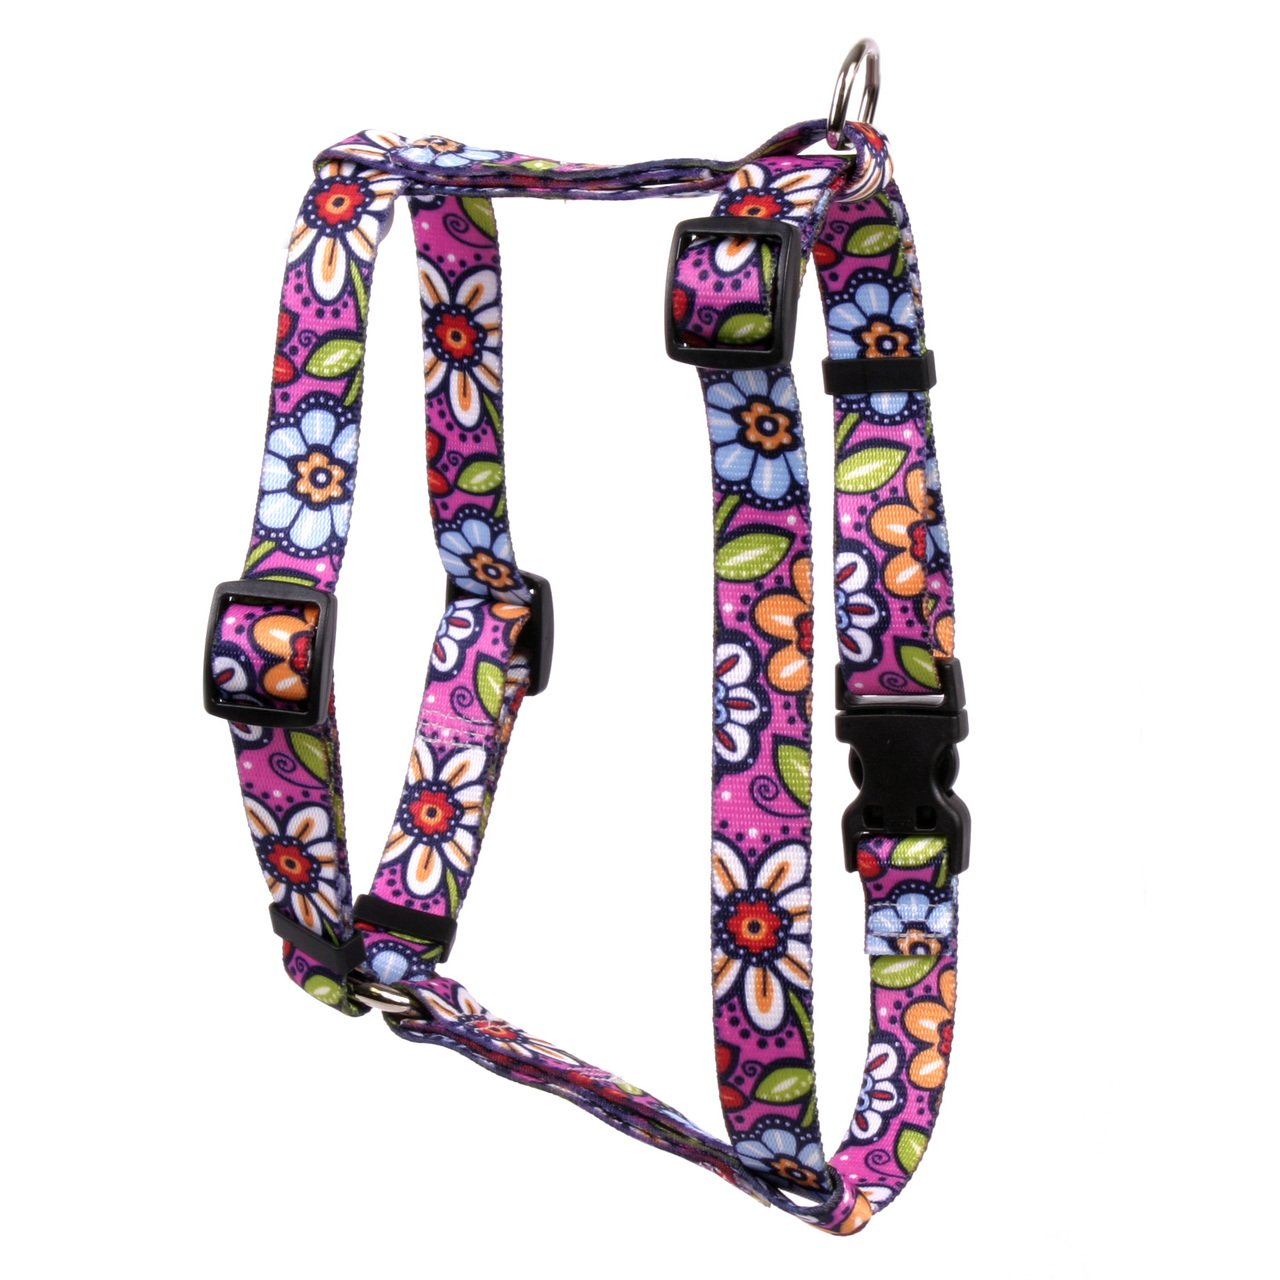 Yellow Dog Design Pink Garden Roman Style H Dog Harness, Small/Medium-3/4 Wide fits Chest of 14 to 20'' by Yellow Dog Design